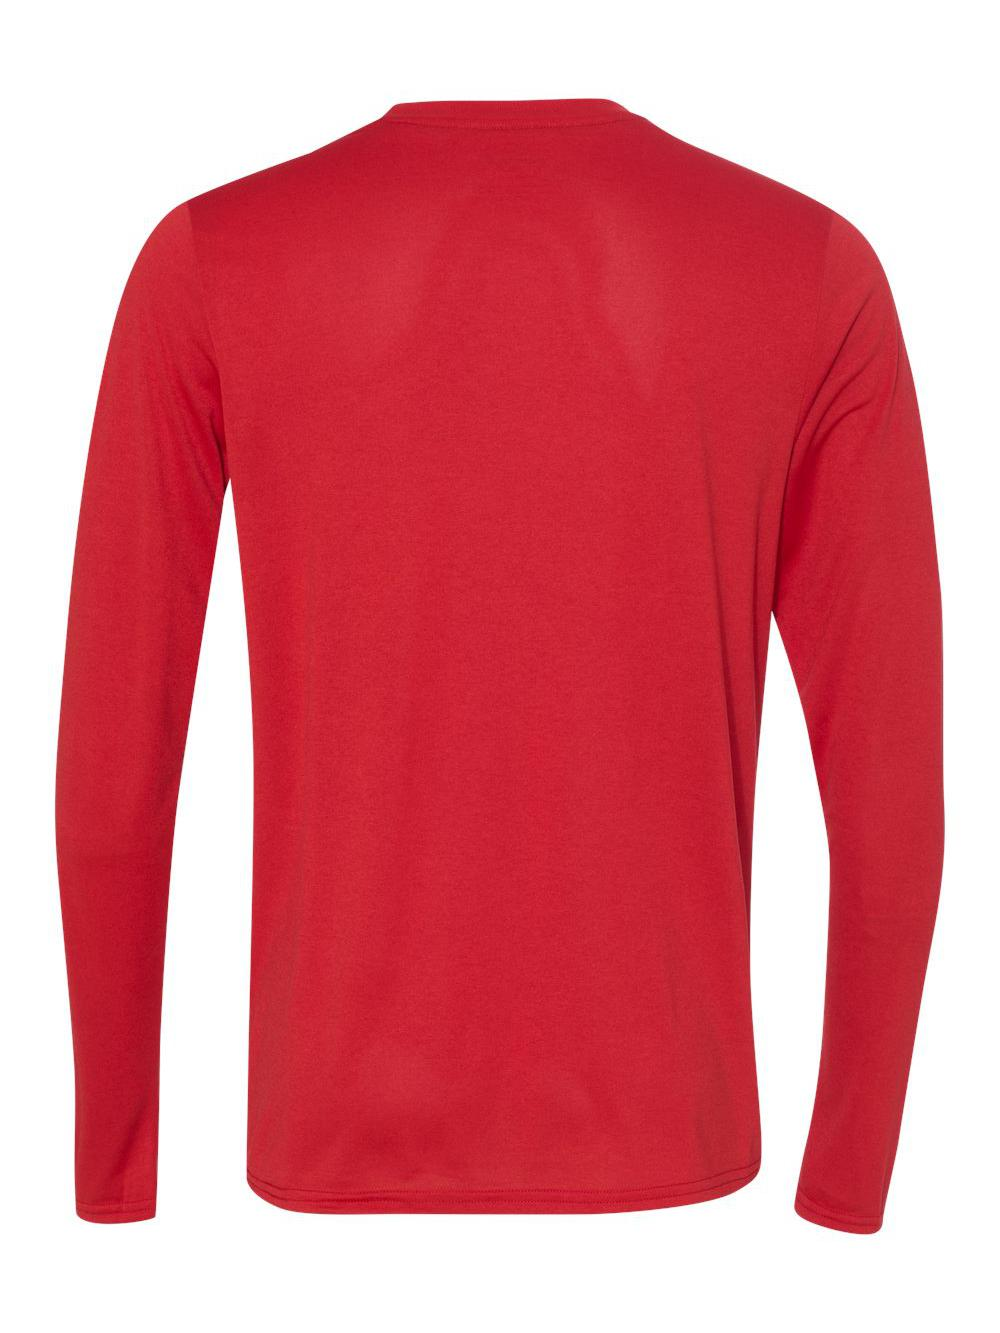 Gildan-Tech-Performance-Long-Sleeve-T-Shirt-47400 thumbnail 22